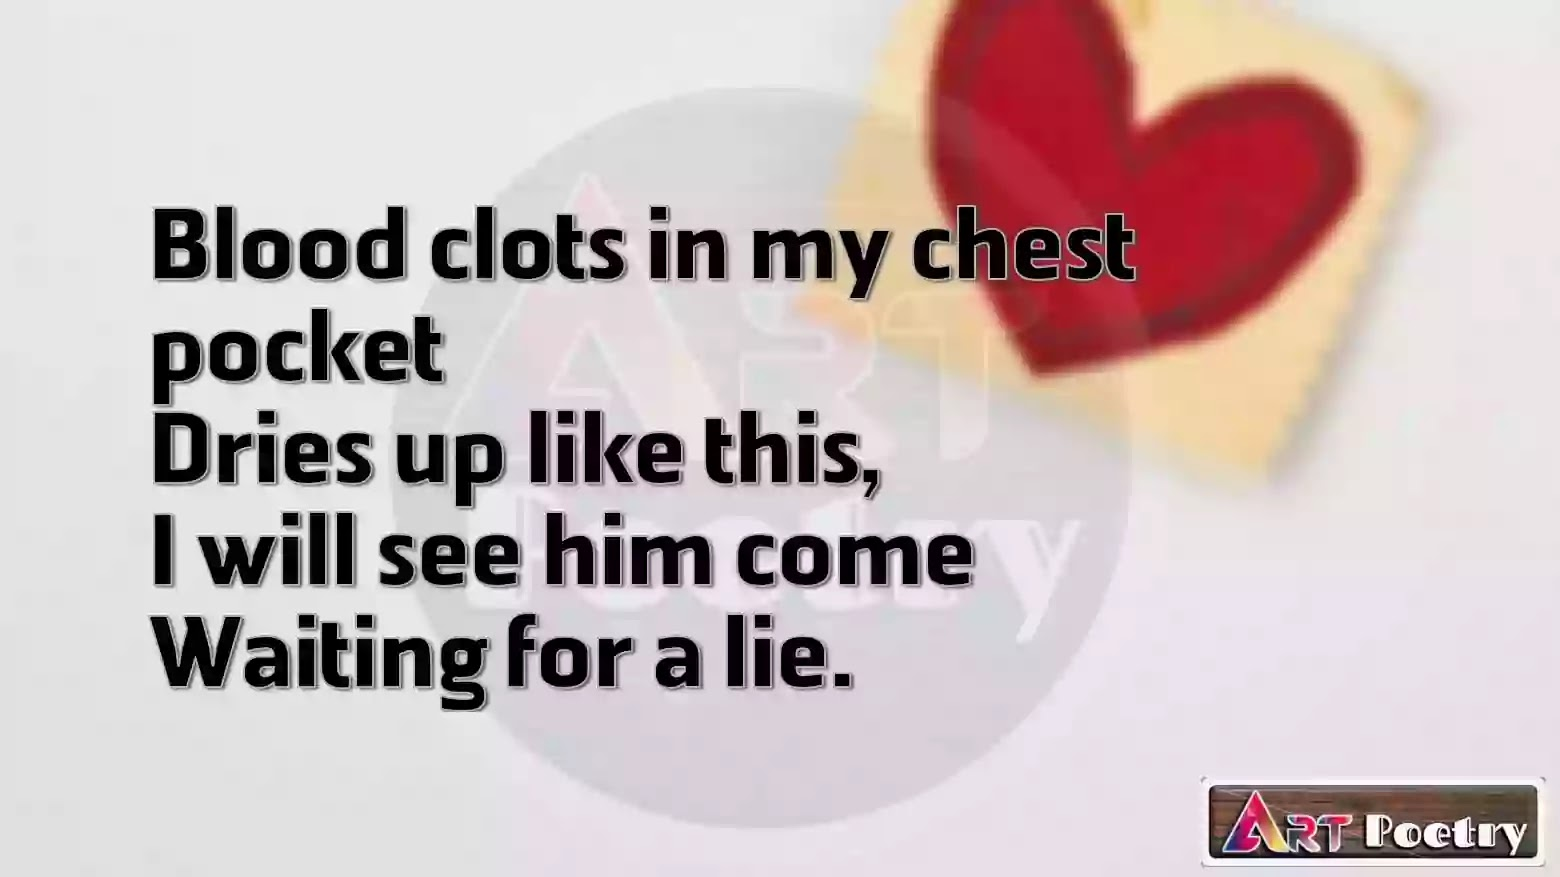 Broken heart Quotes   love heart break quotes   heart break   heart break quotes images quotes   Blood clots in my chest pocketDries up like this,I will see him comeWaiting for a lie.